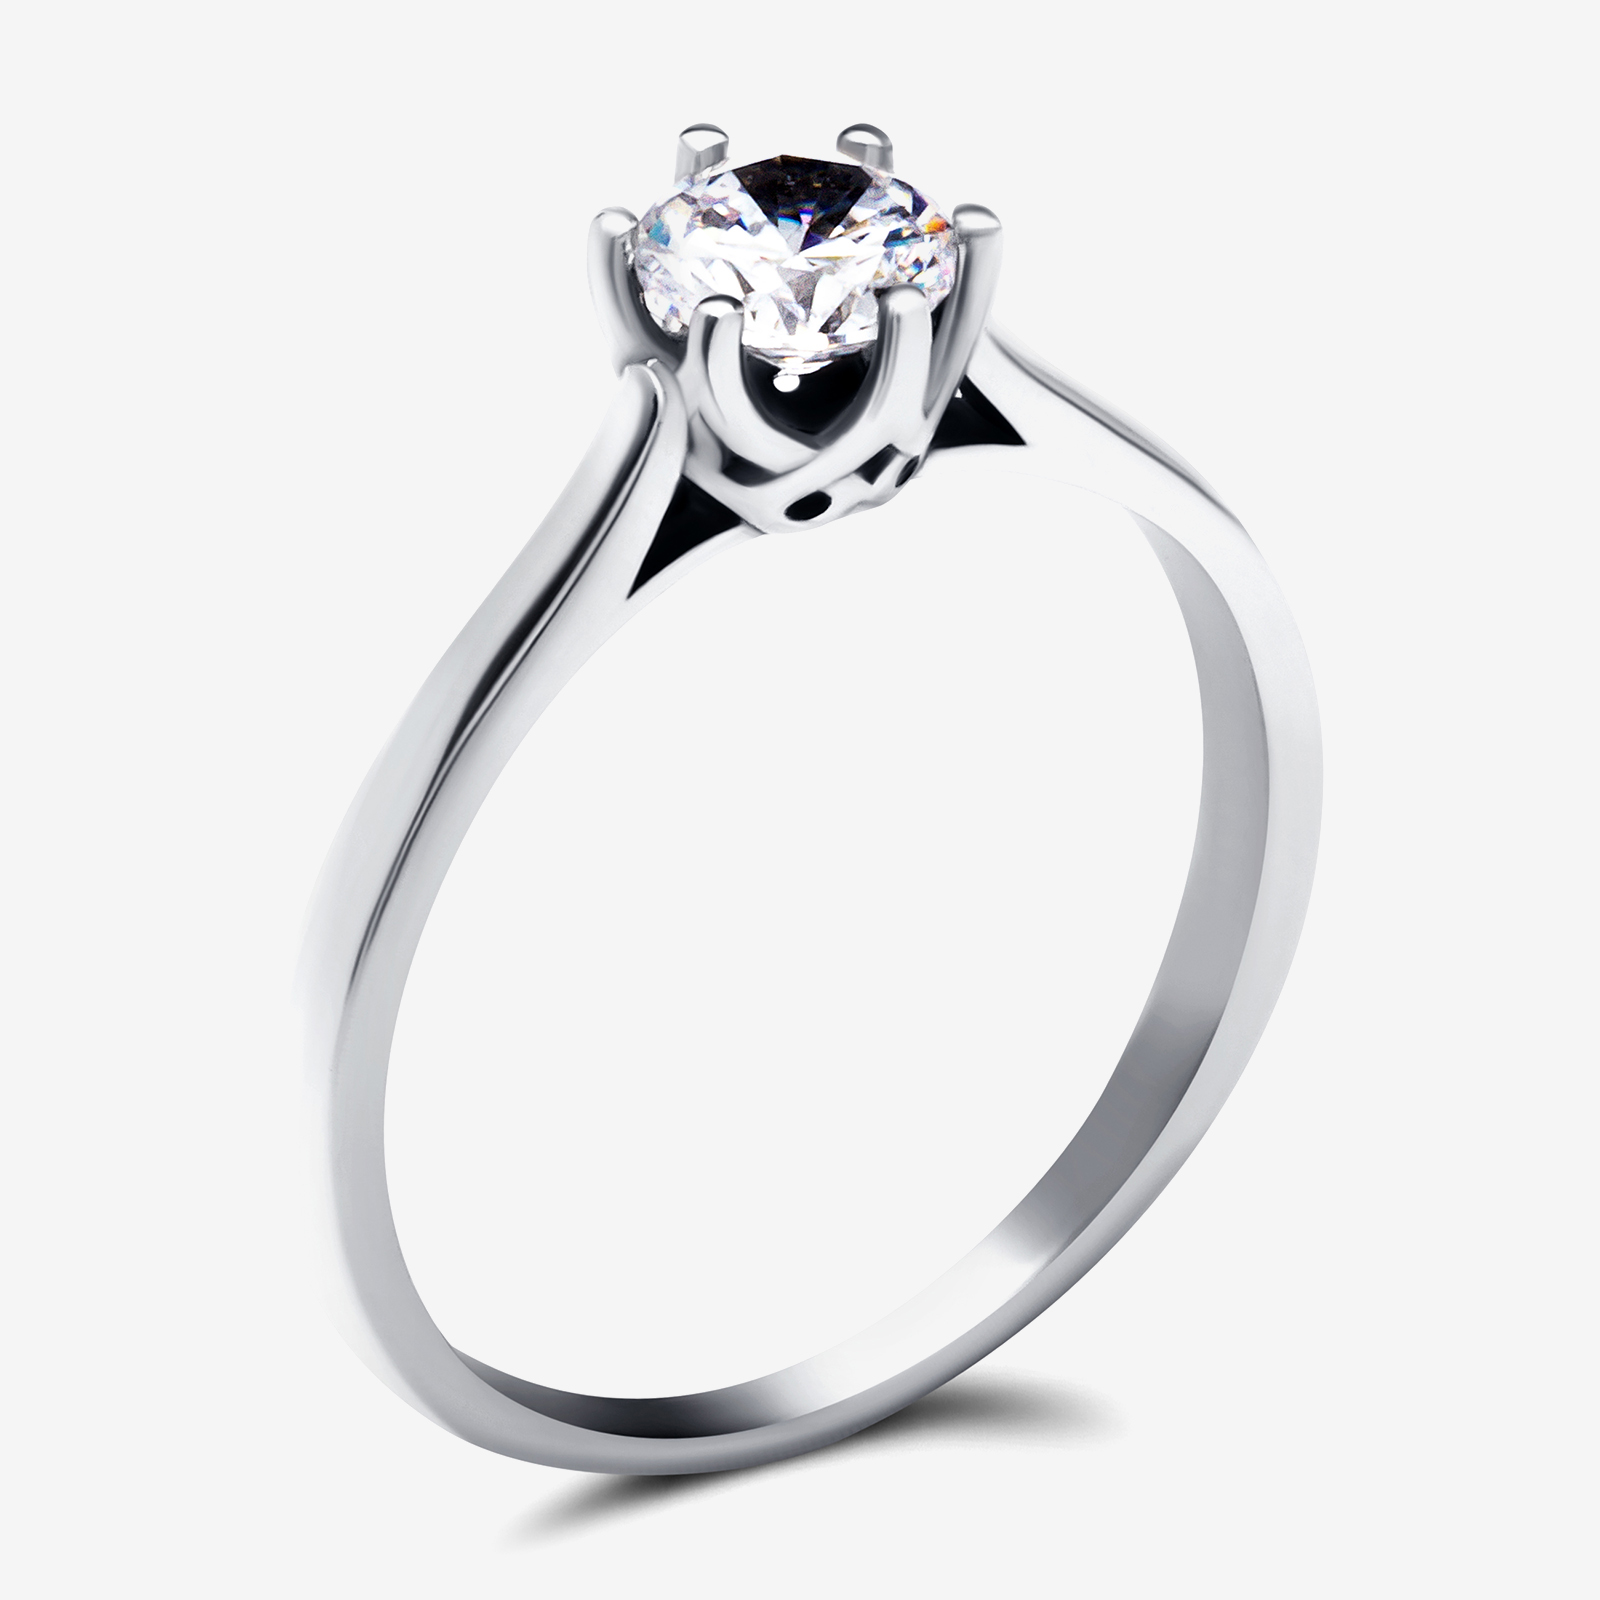 Ring product photography